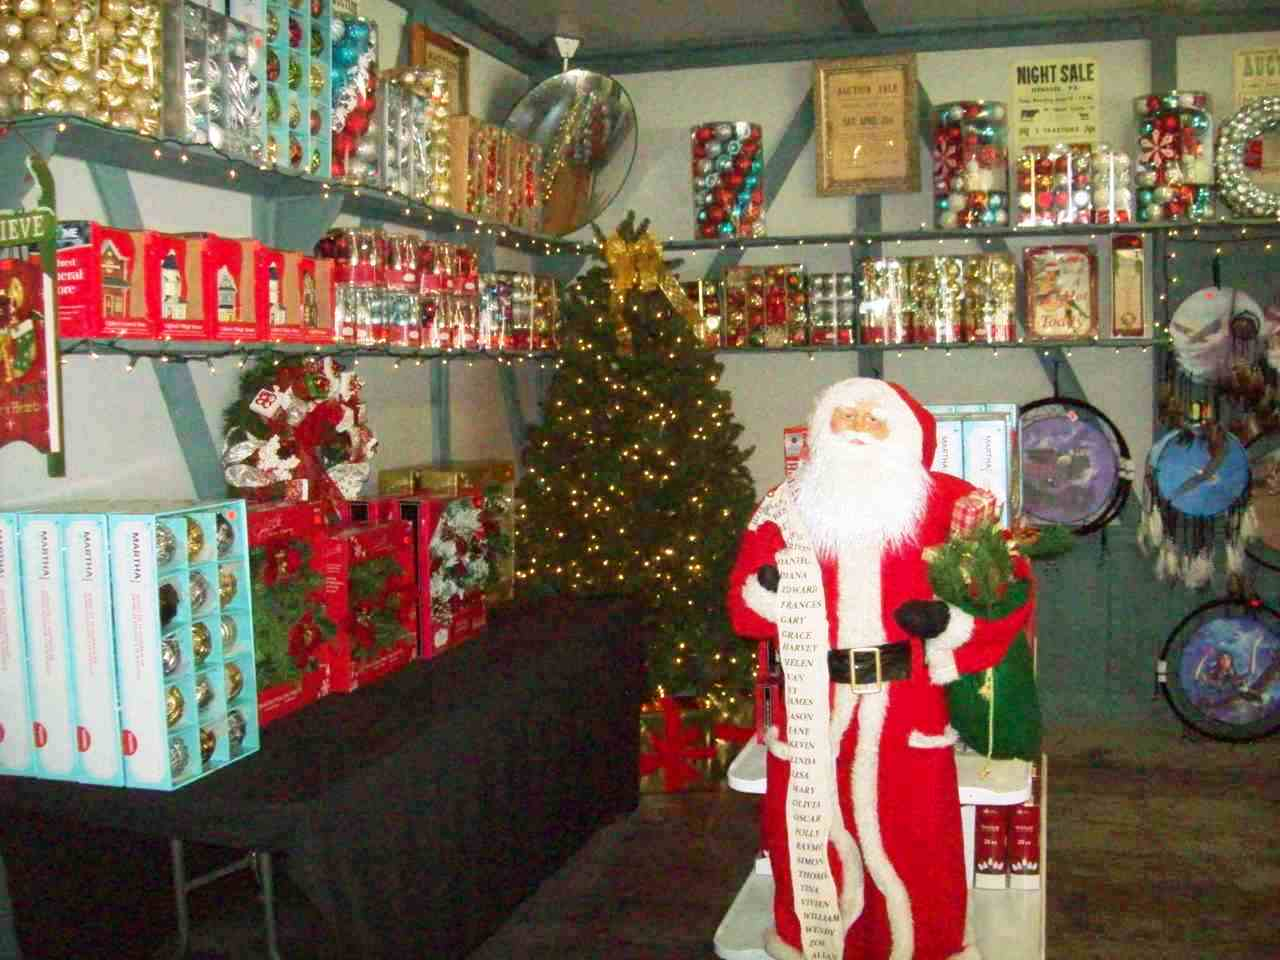 Christmas Decorations available at Gokeys Outlet Stores